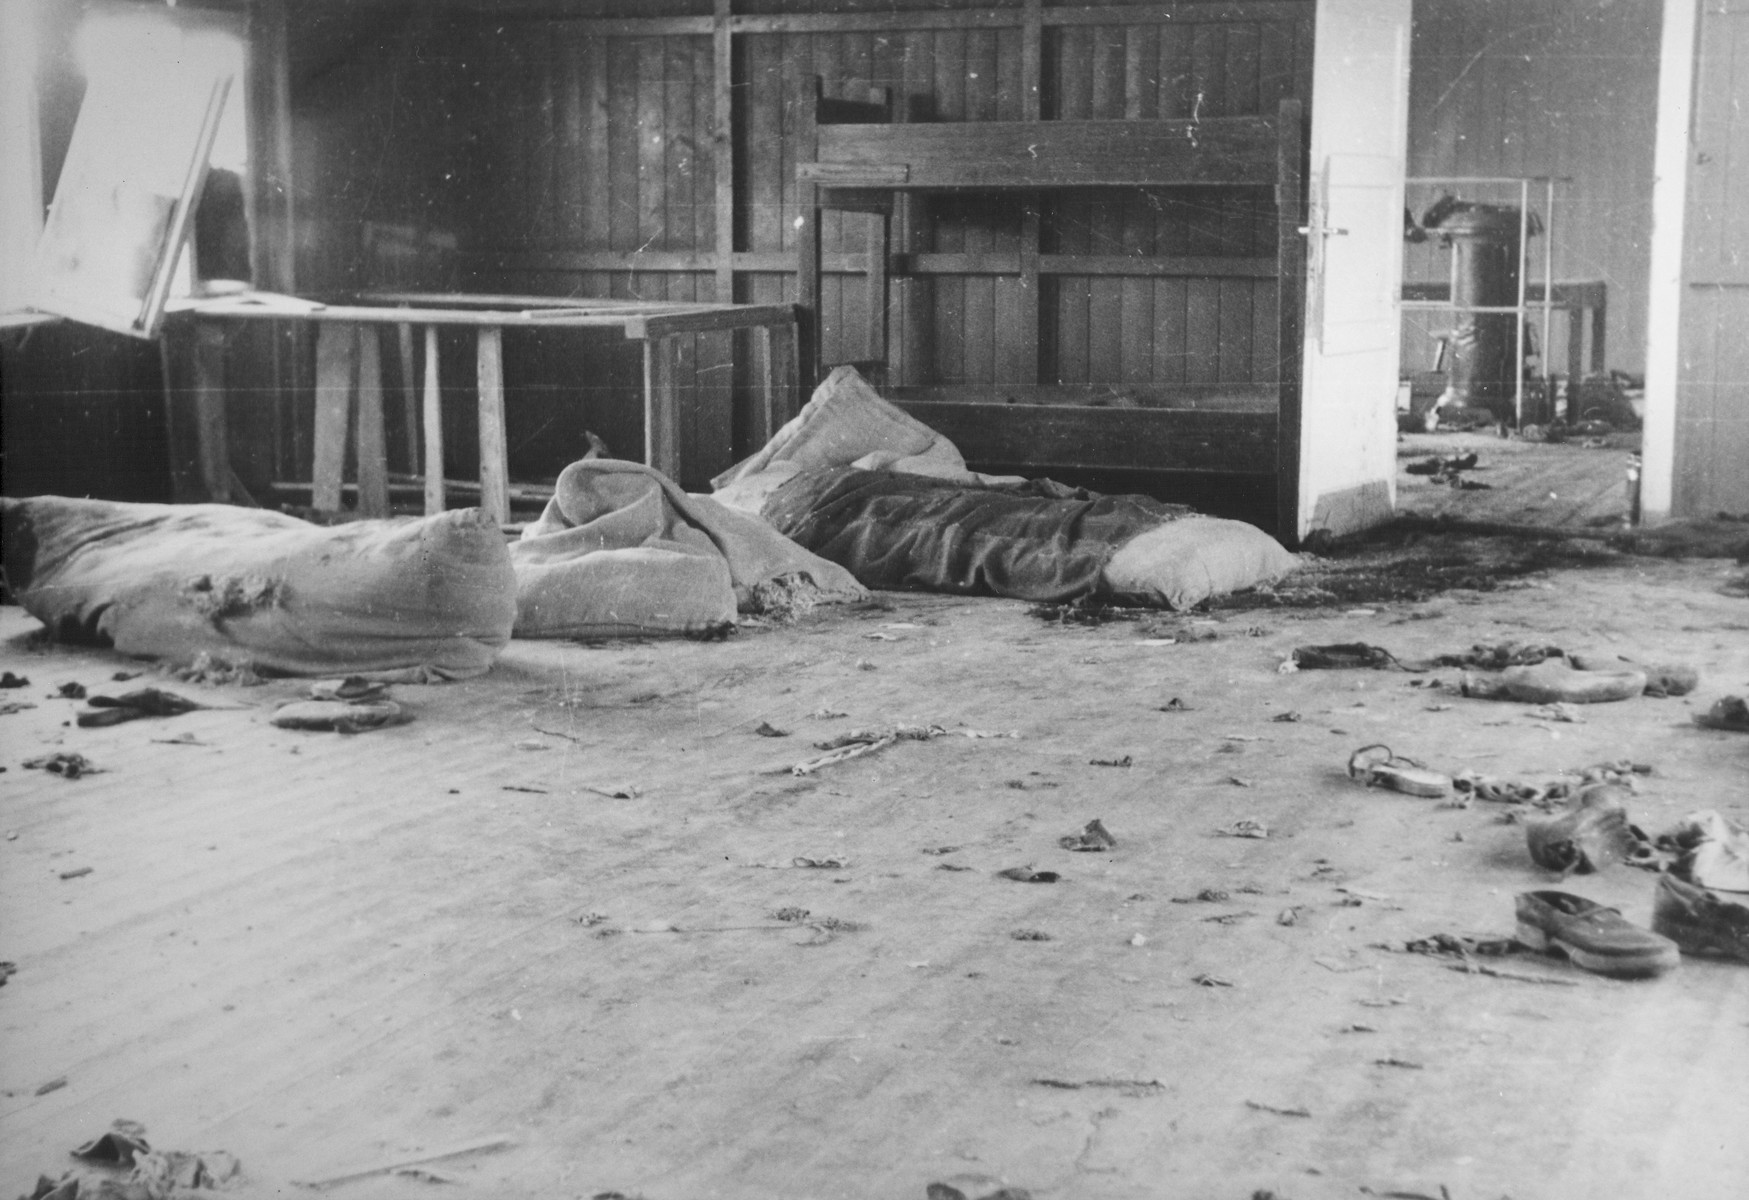 Interior view of Mauthausen Block 20 following an escape attempt by Russian prisoners.  According to the Nuremberg Trial testimony of Mauthausen survivor Francisco Boix, 700 Russian prisoners held in Block 20 attempted to escape from the camp at the end of January 1945 and meet the Red Army as it approached Yugoslavia.  Of these only 62 survived, the rest having been killed during the escape or on route to the border.